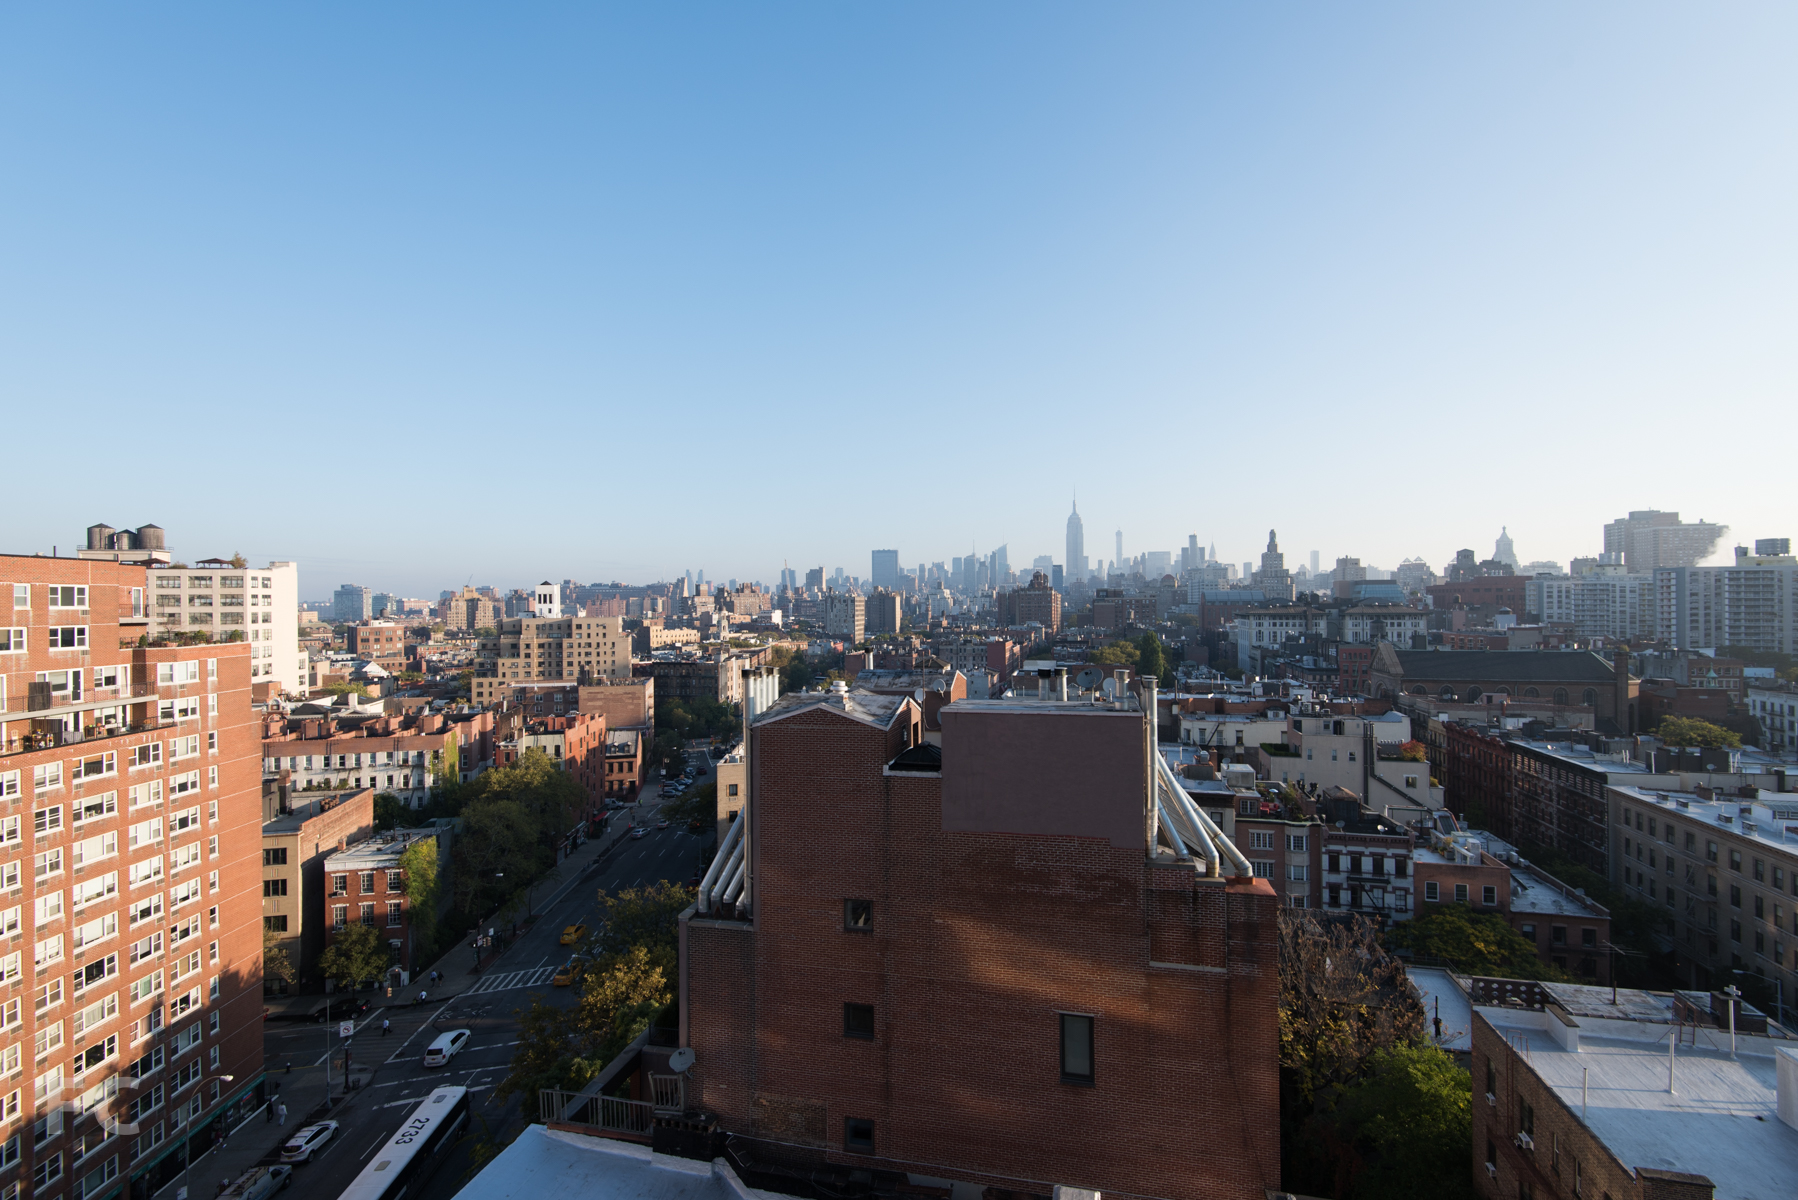 Looking north to Midtown from the Penthouse B roof deck on floor 12.